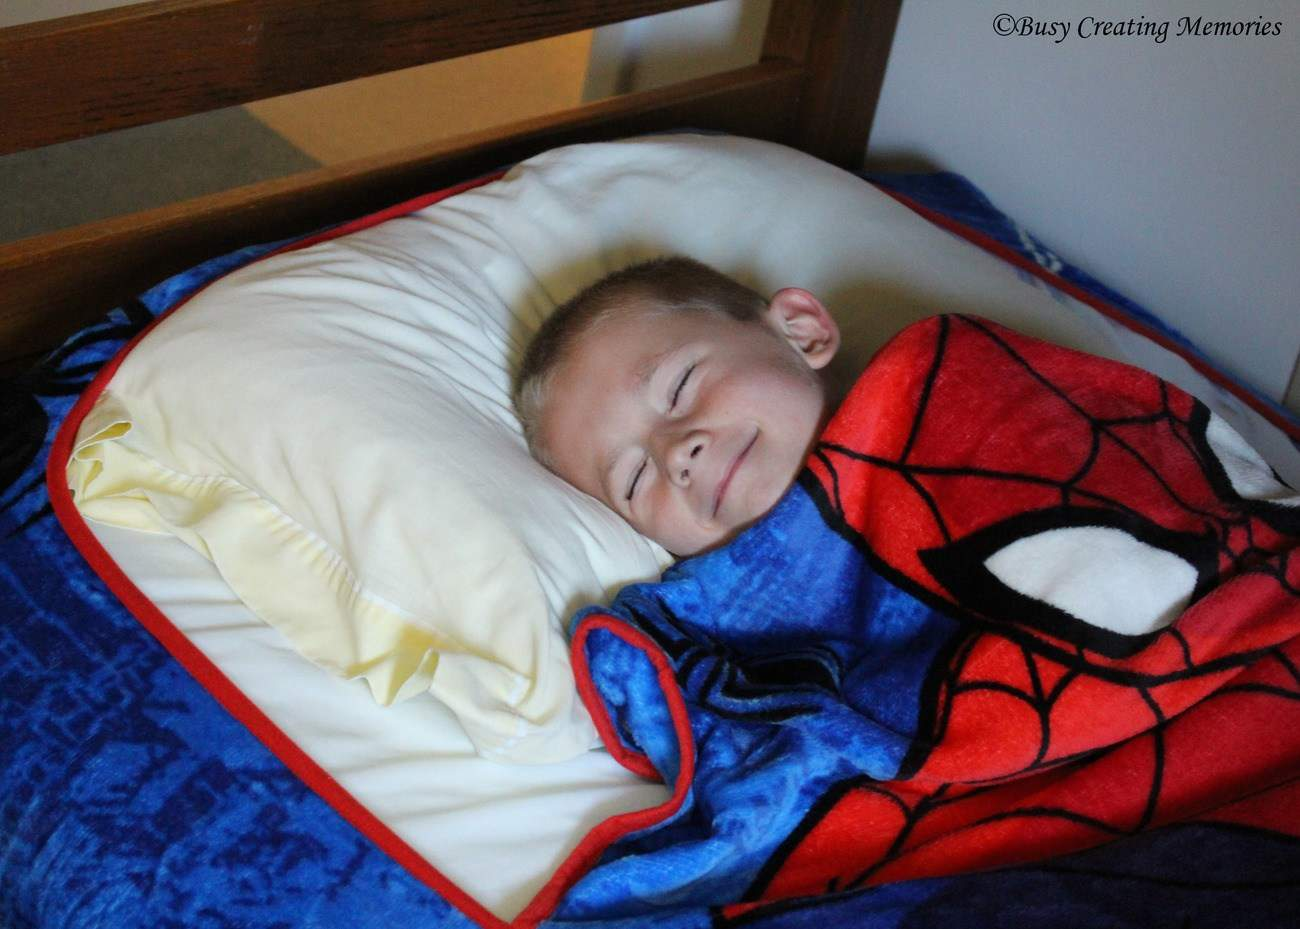 zippy-sack-is-so-comfy-for-sleeping-kids